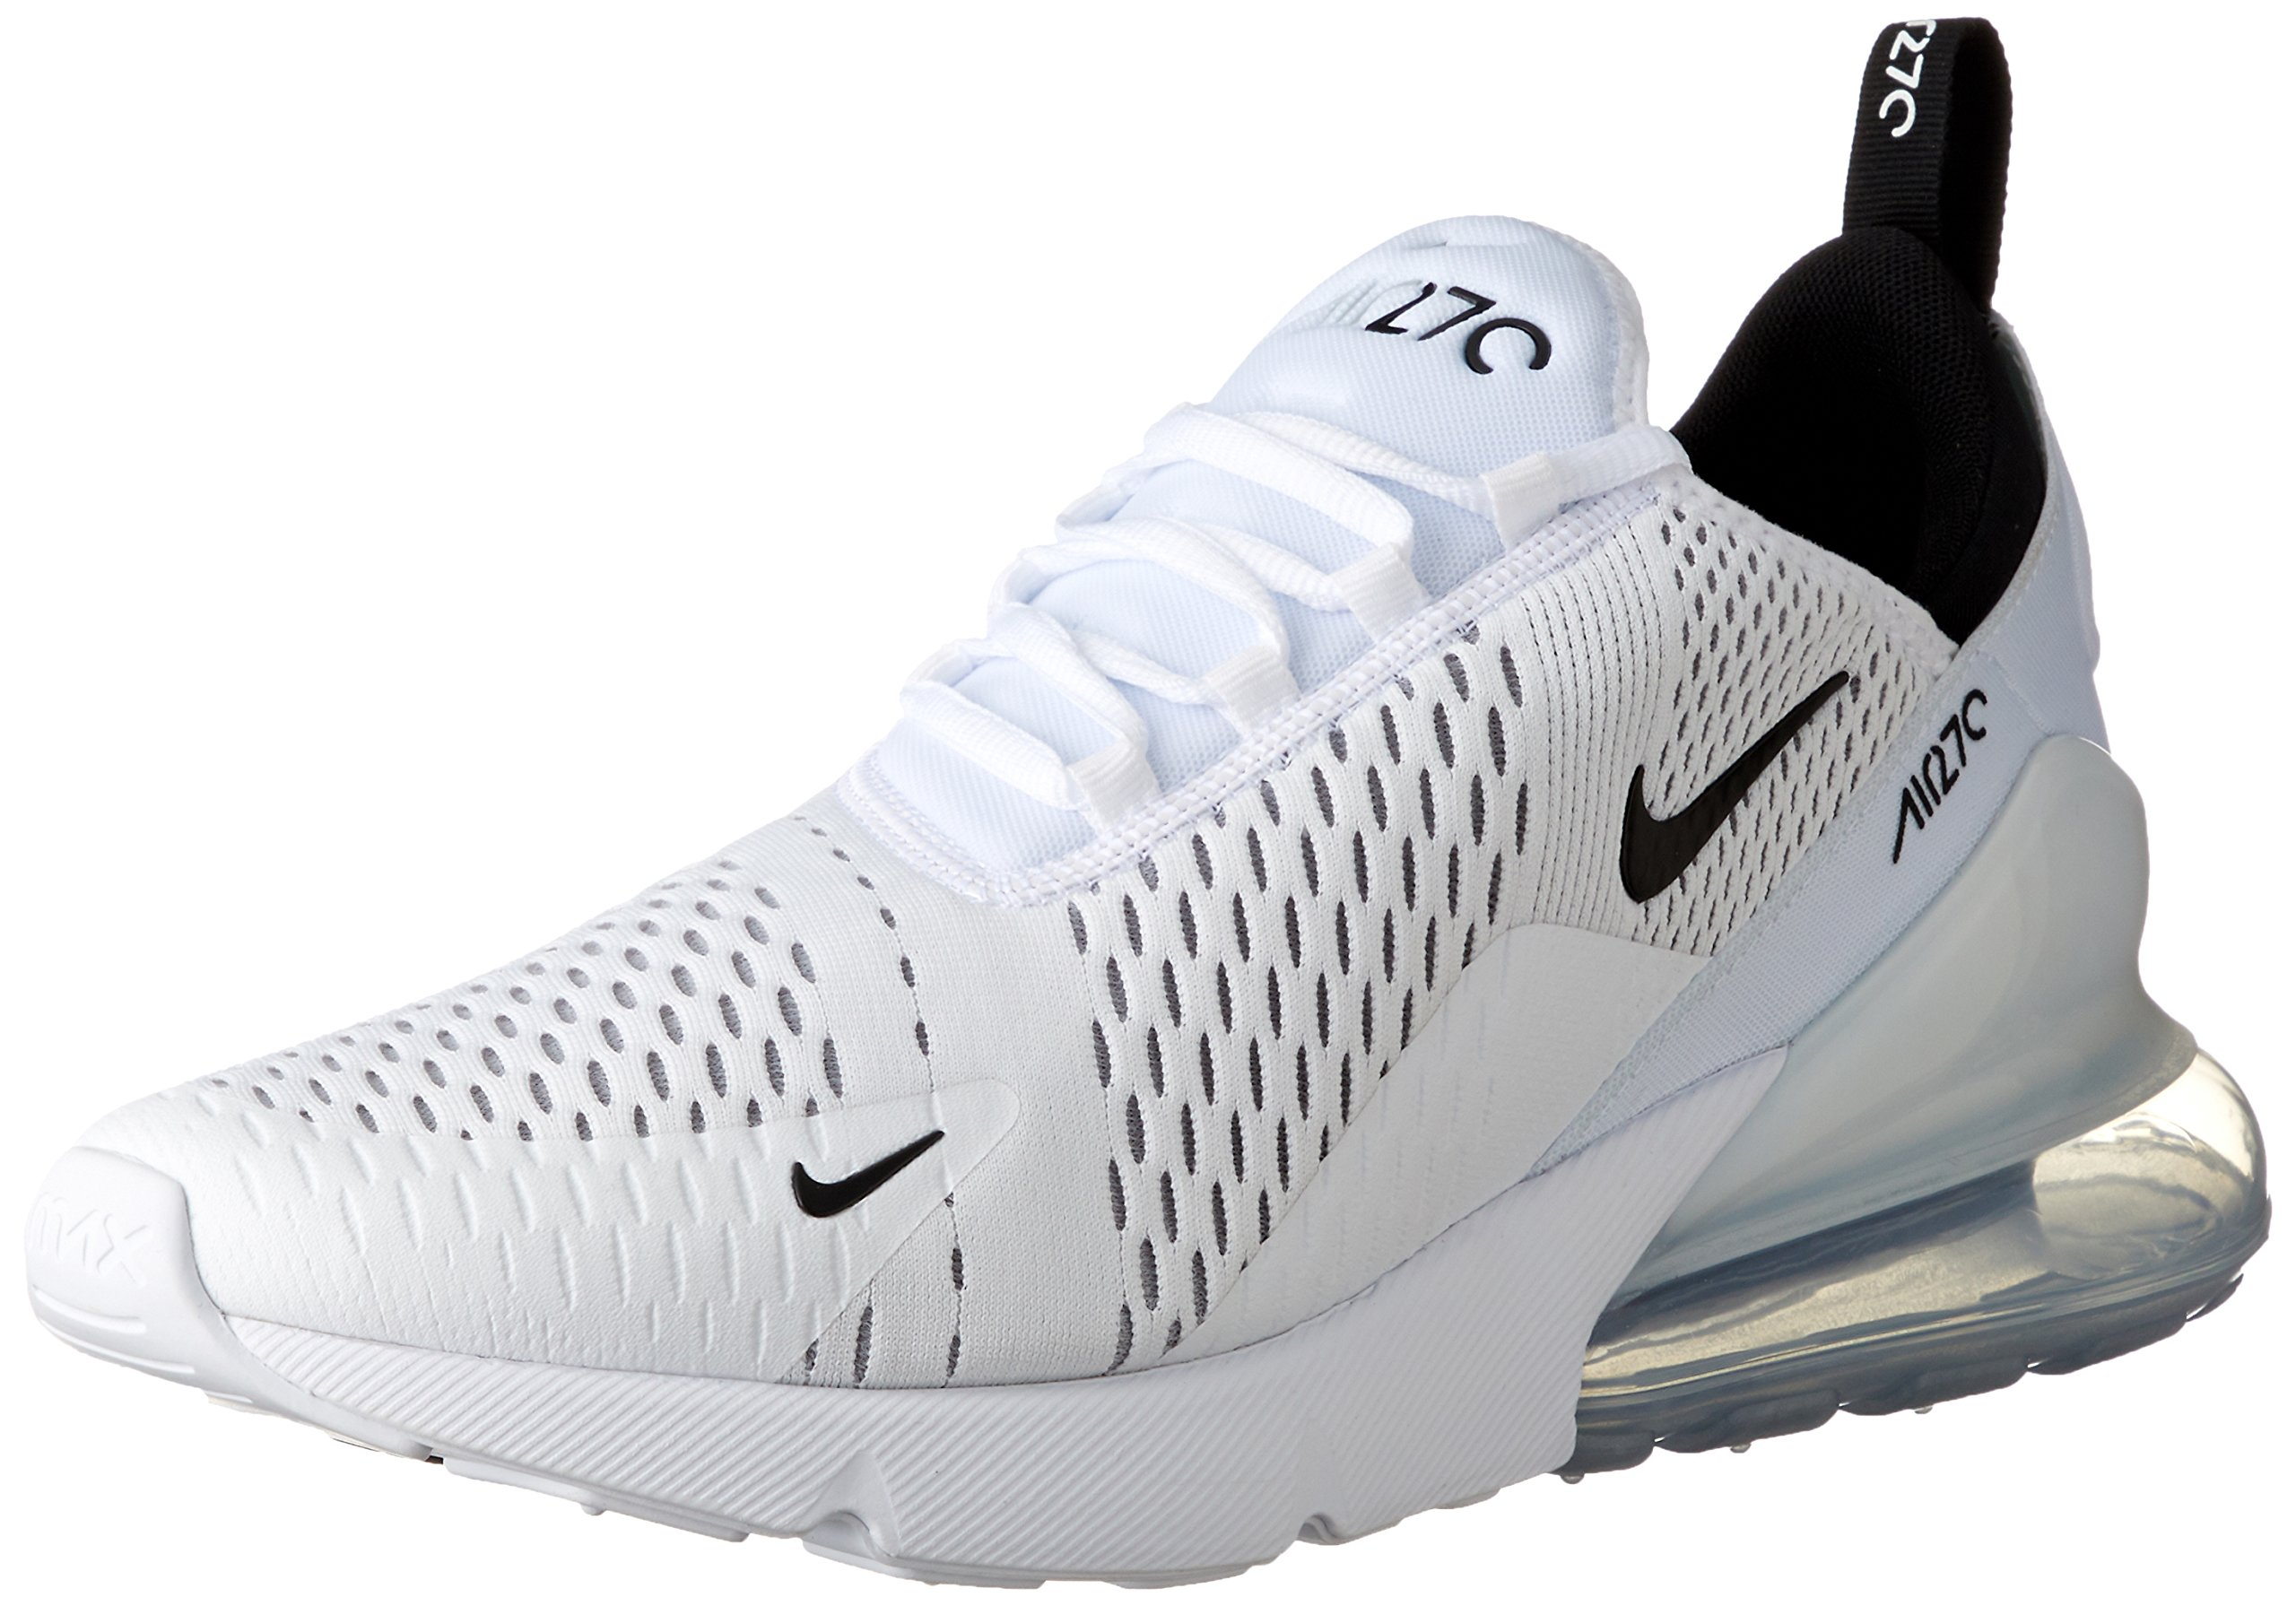 the best attitude 3fd8f 234fc Galleon - Nike Air Max 270 Men s Running Shoes White Black-White AH8050-100  (10 D(M) US)